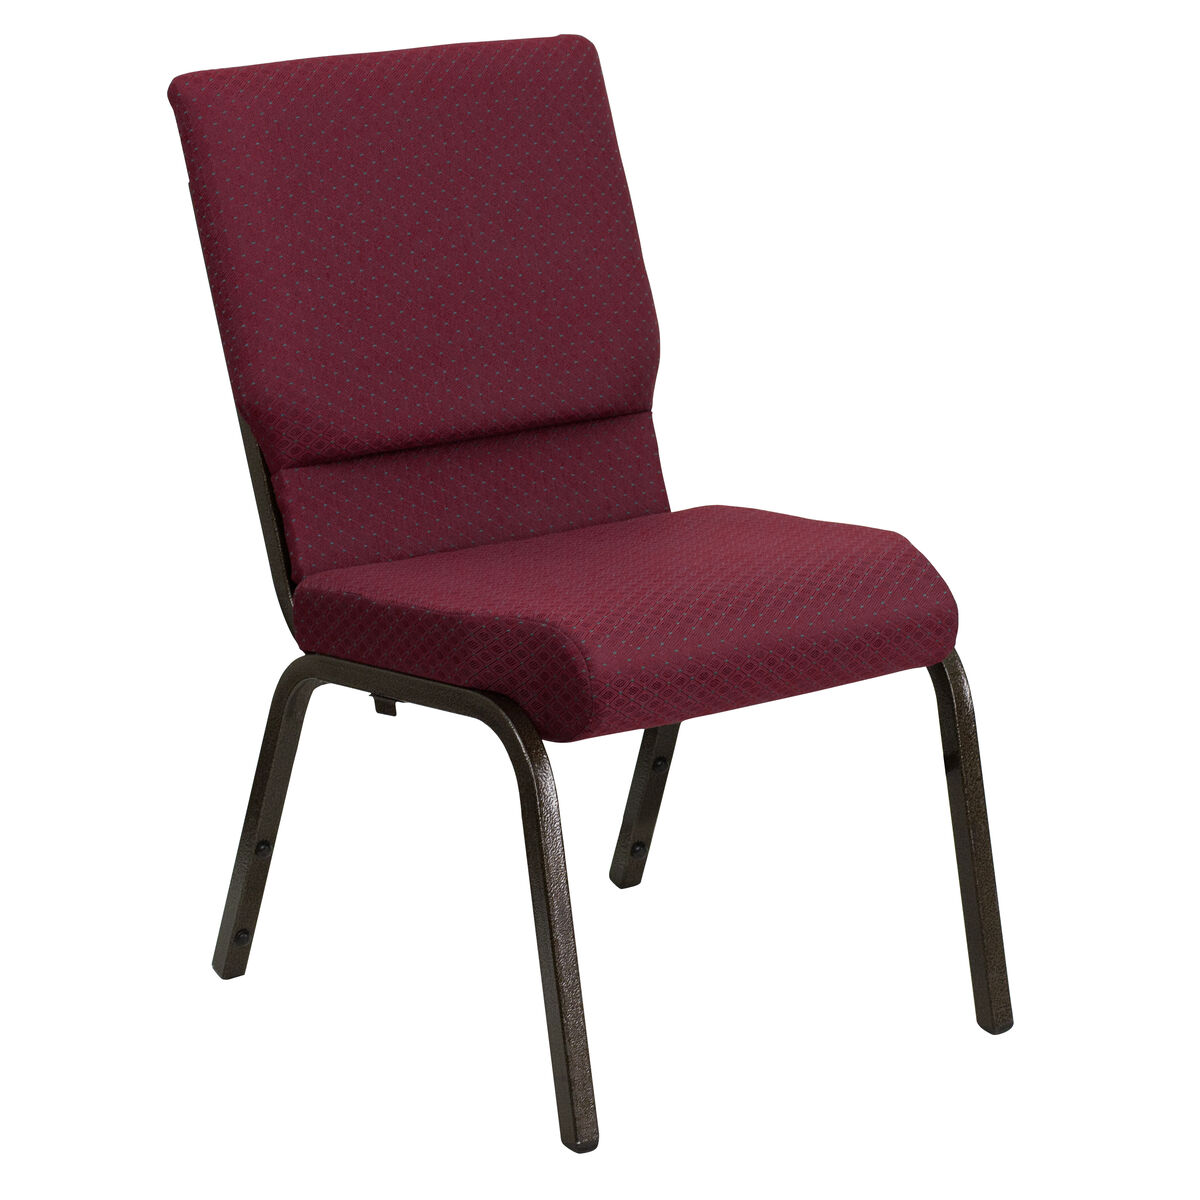 Stacking Church Chair in Burgundy Patterned Fabric Gold Metal Frame